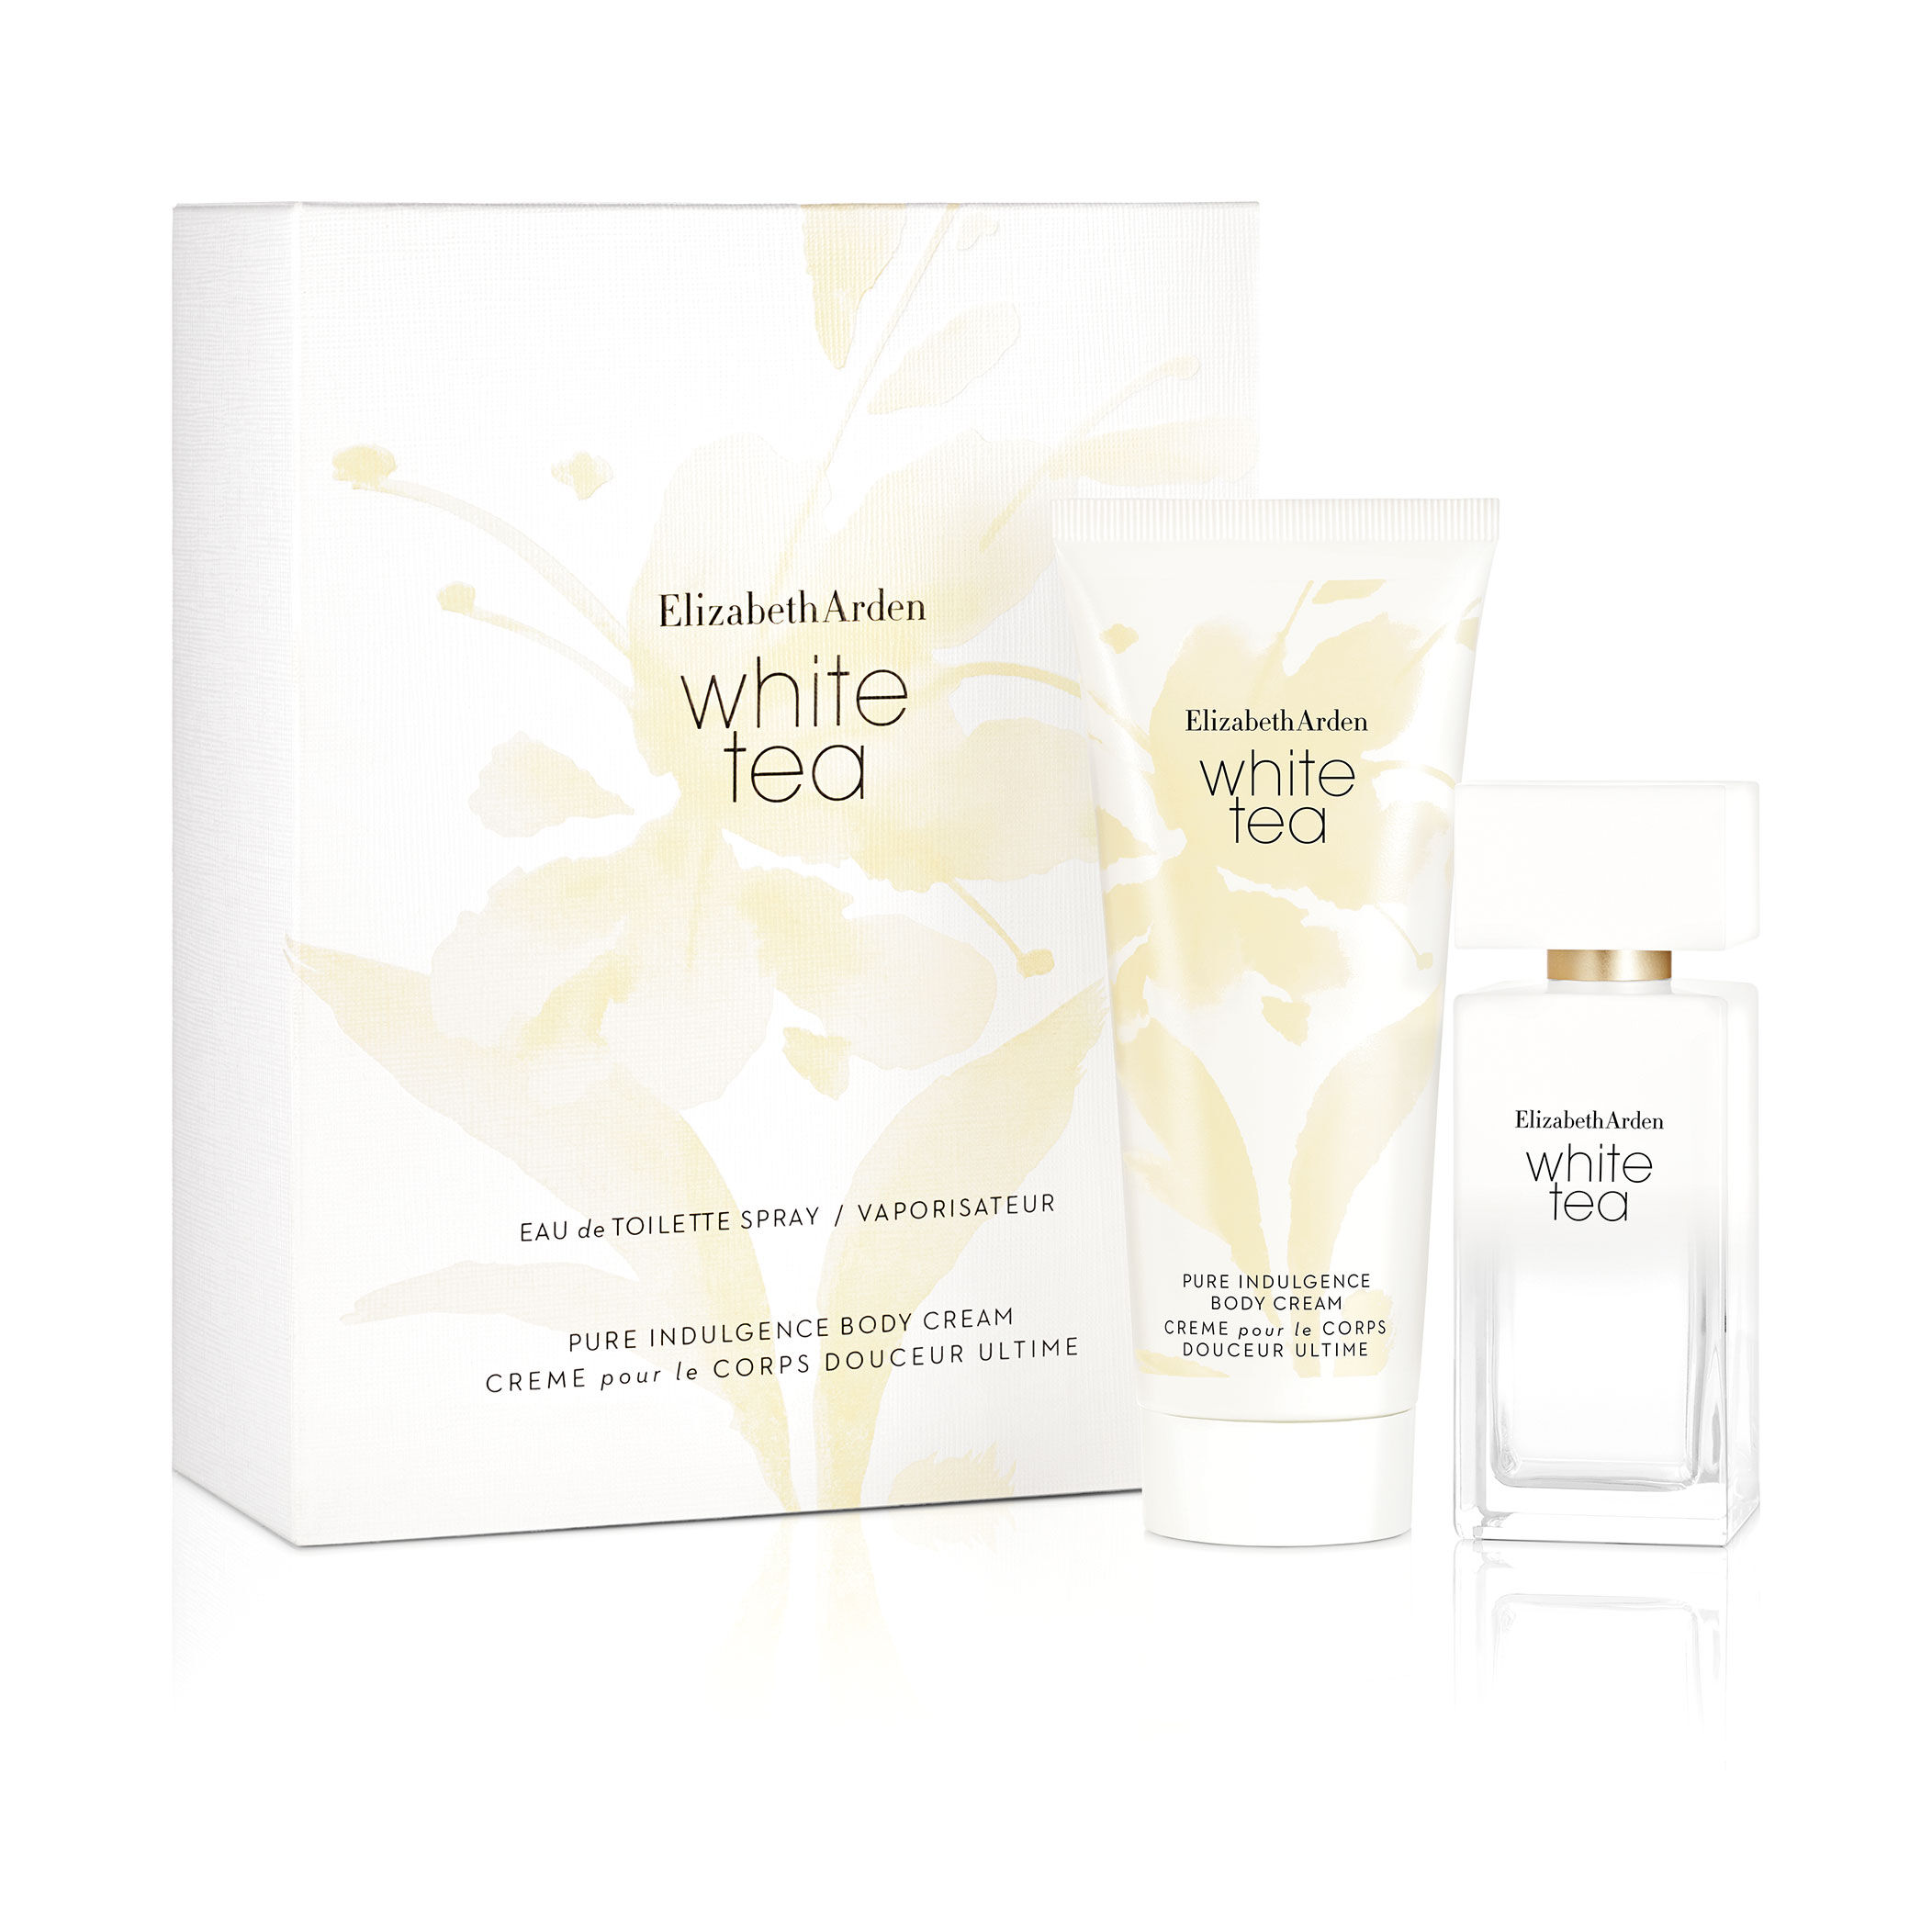 Elizabeth Arden White Tea Gift Set